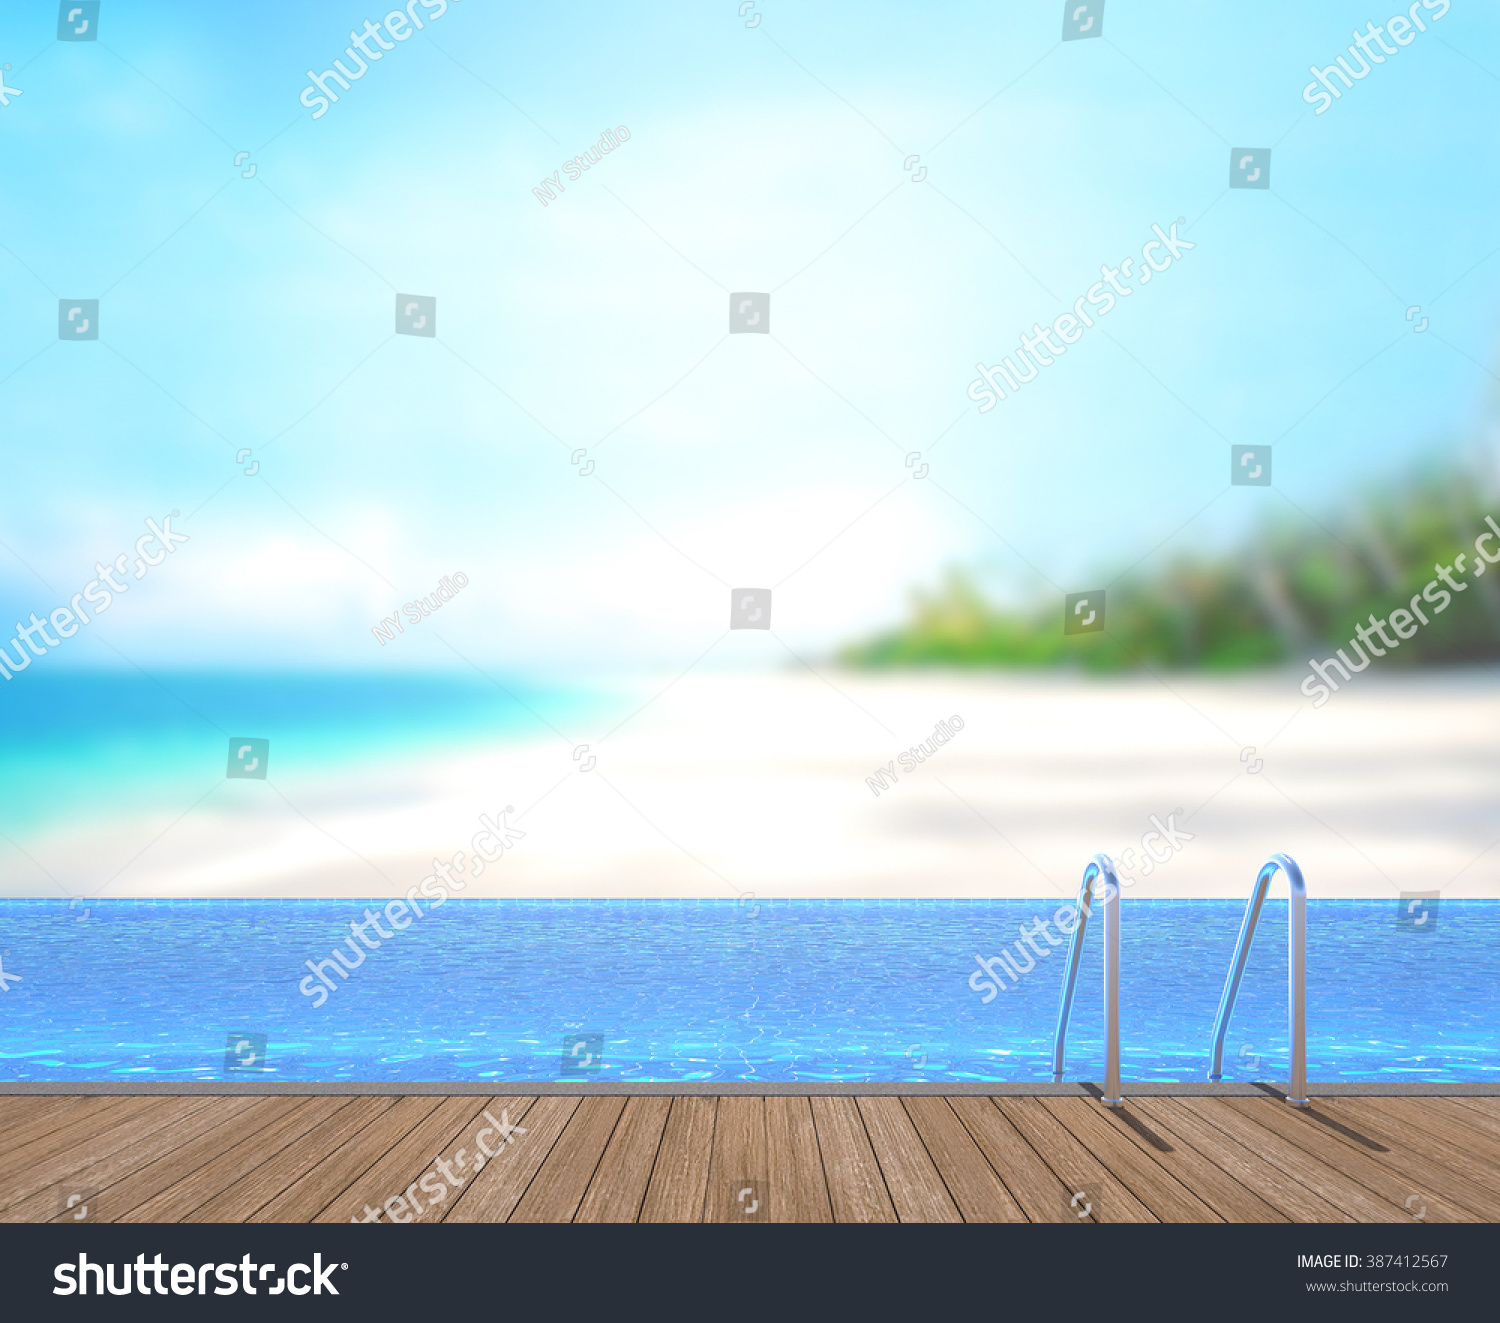 swimming pool terrace blur nature background stock photo 387412567 shutterstock. Black Bedroom Furniture Sets. Home Design Ideas